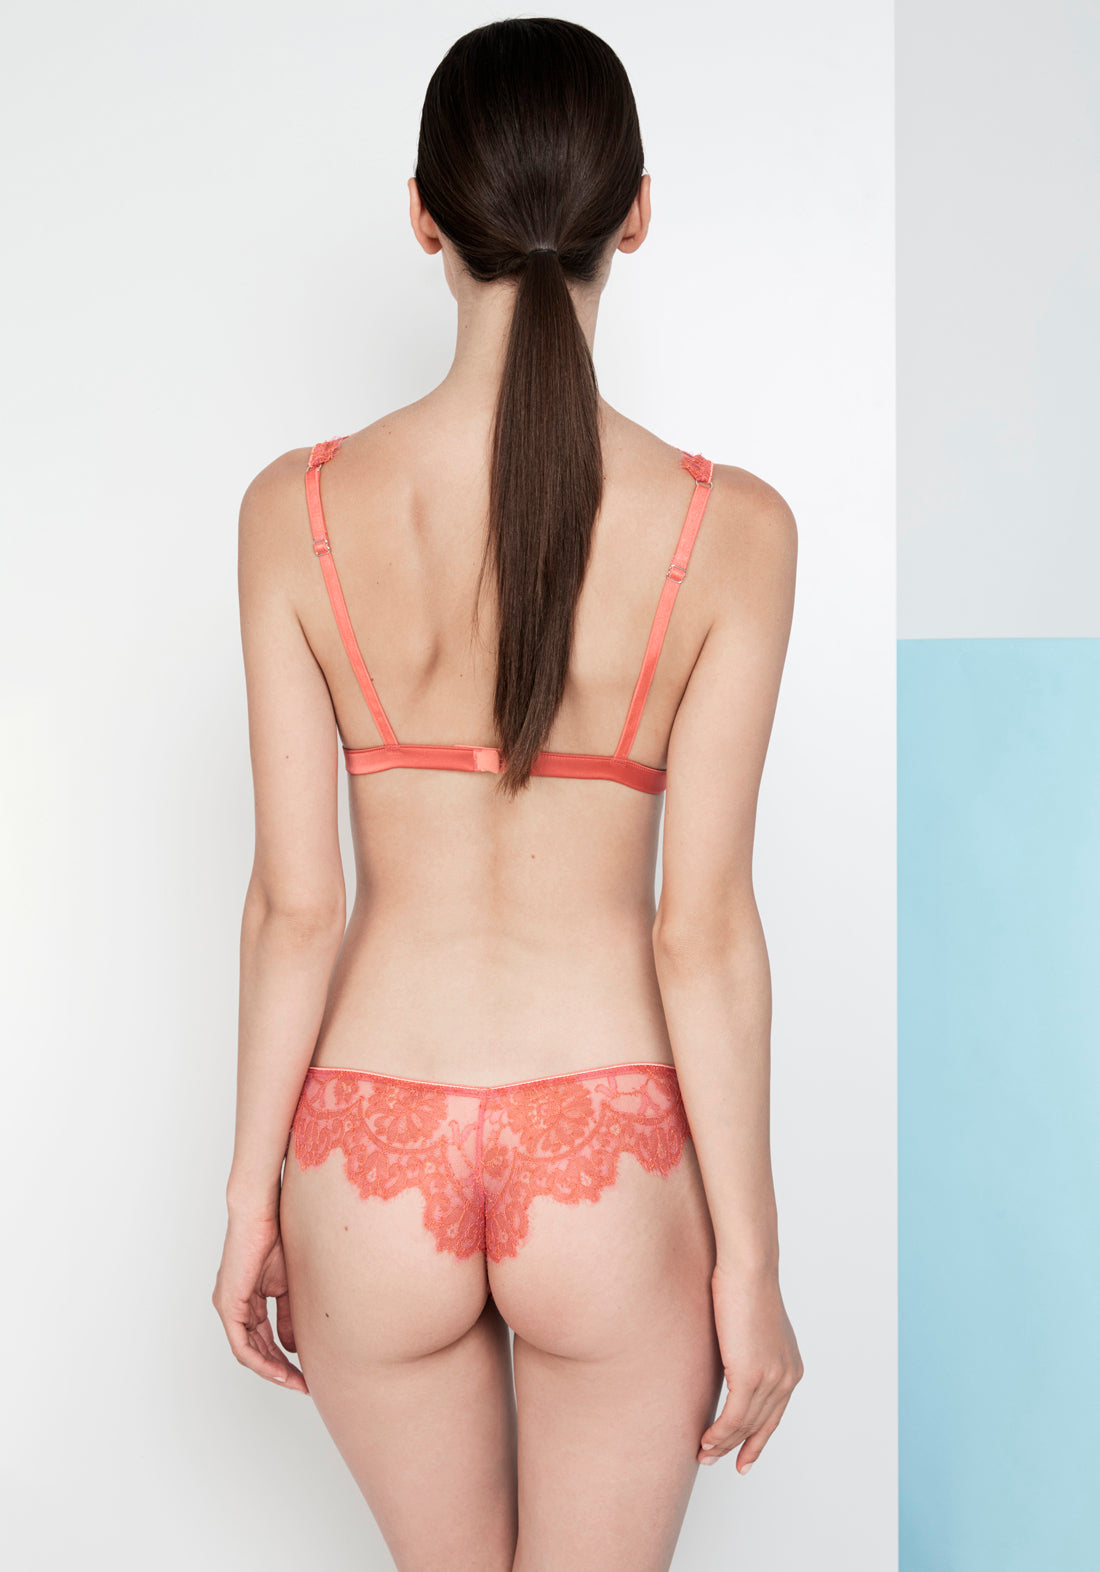 Feu Interdit Soft-Cup Triangle Bra in Coral/Magenta